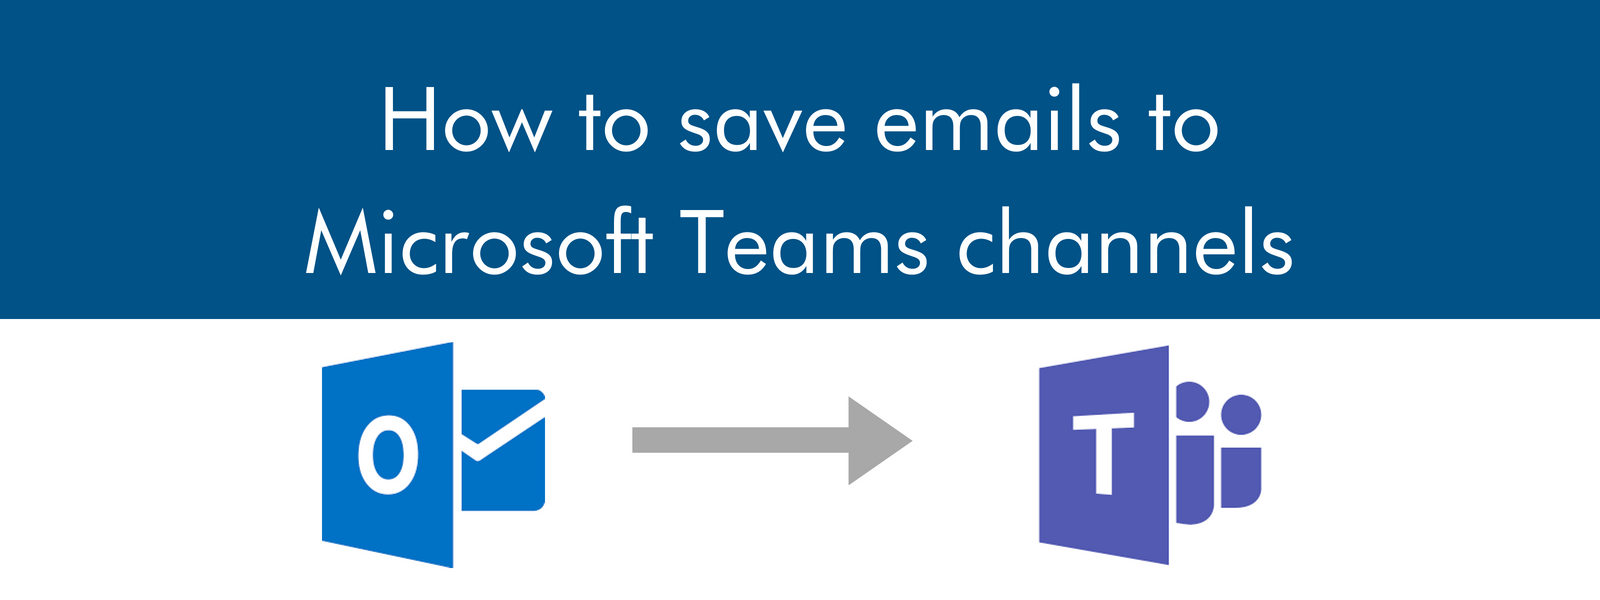 Conveniently save emails to Microsoft Teams channels